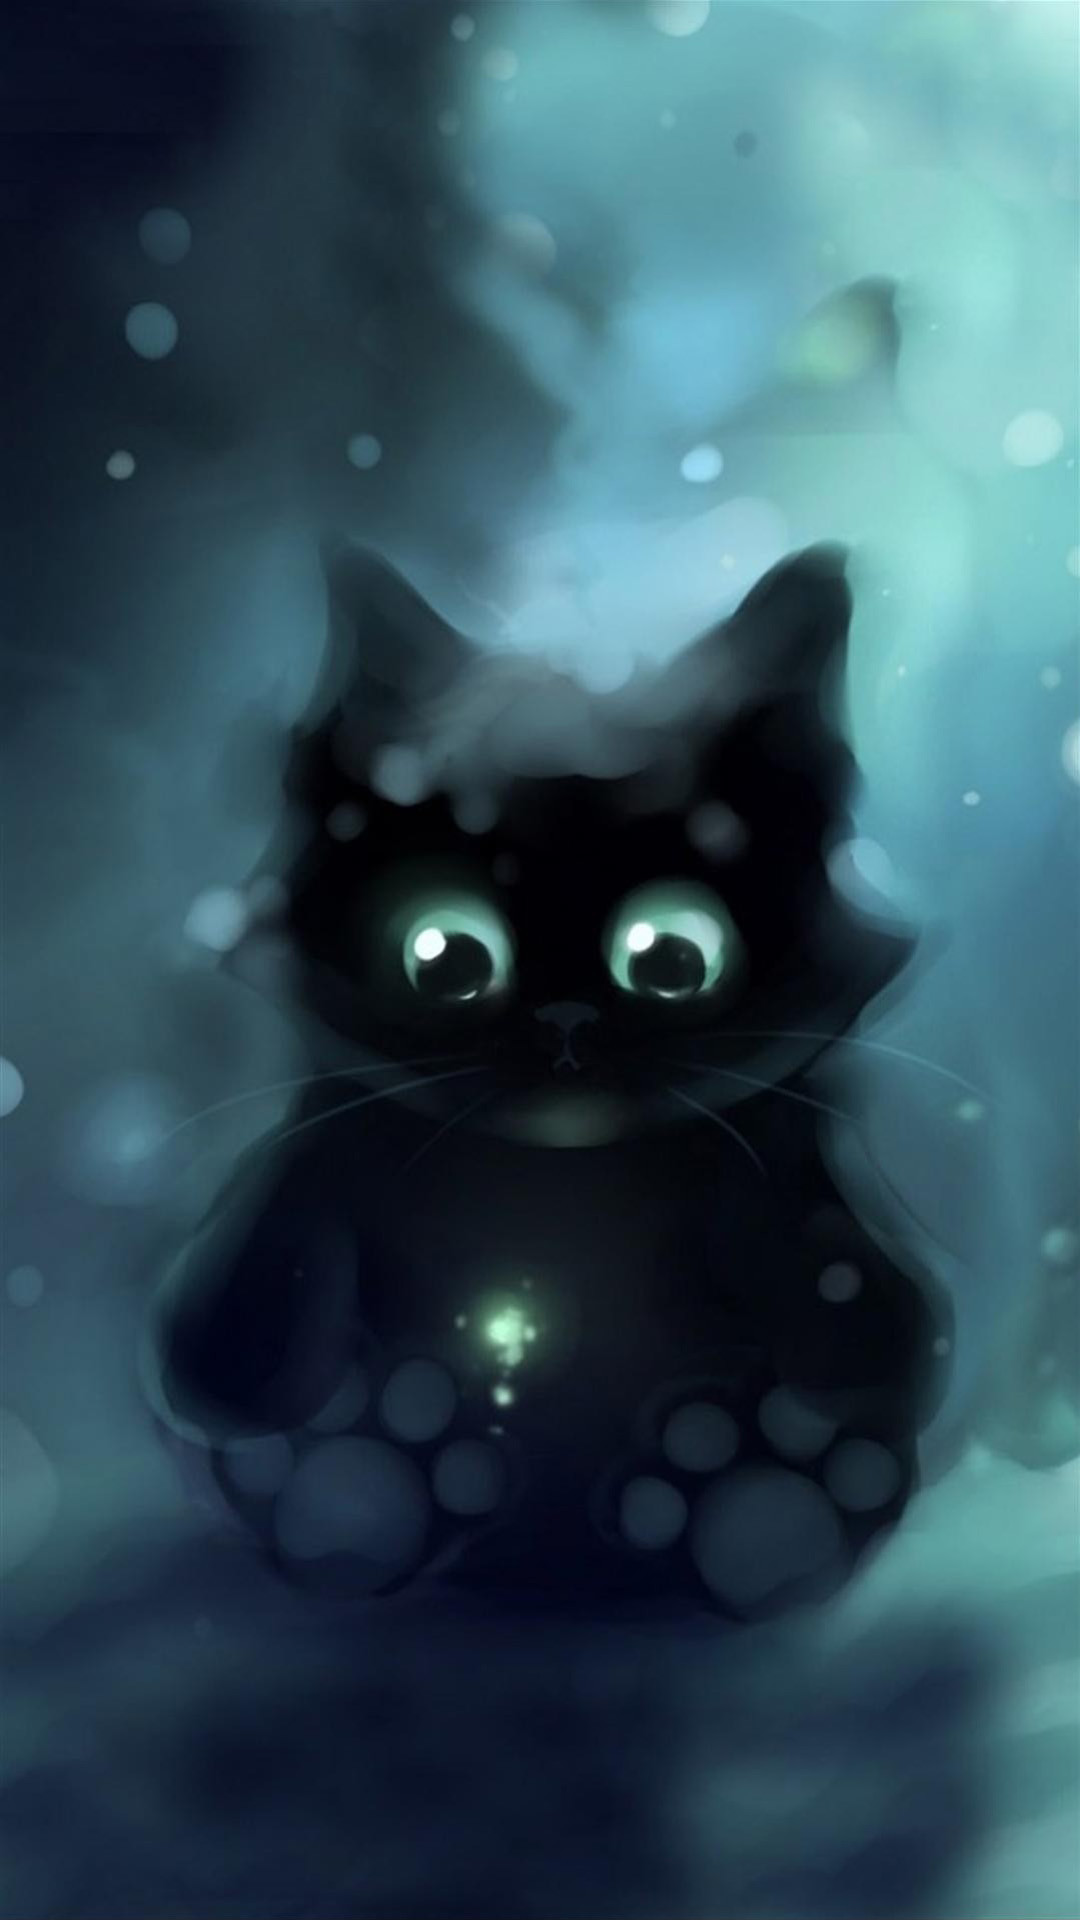 Black Cat Galaxy Note 3 Wallpapers Galaxy Note 3 Wallpapers